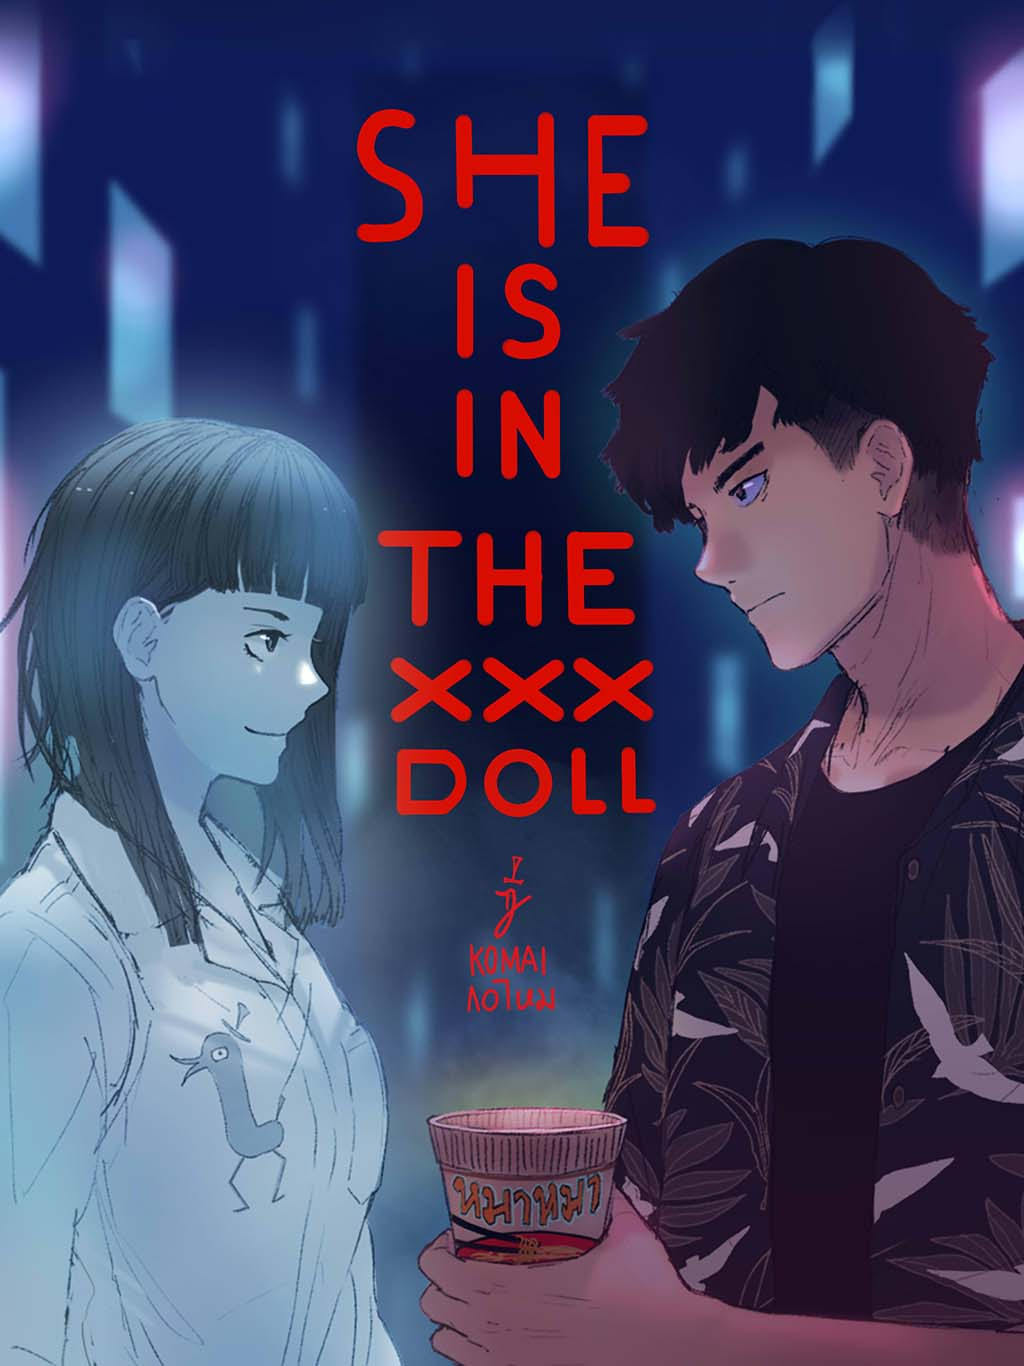 SHE IS IN THE XXX DOLL